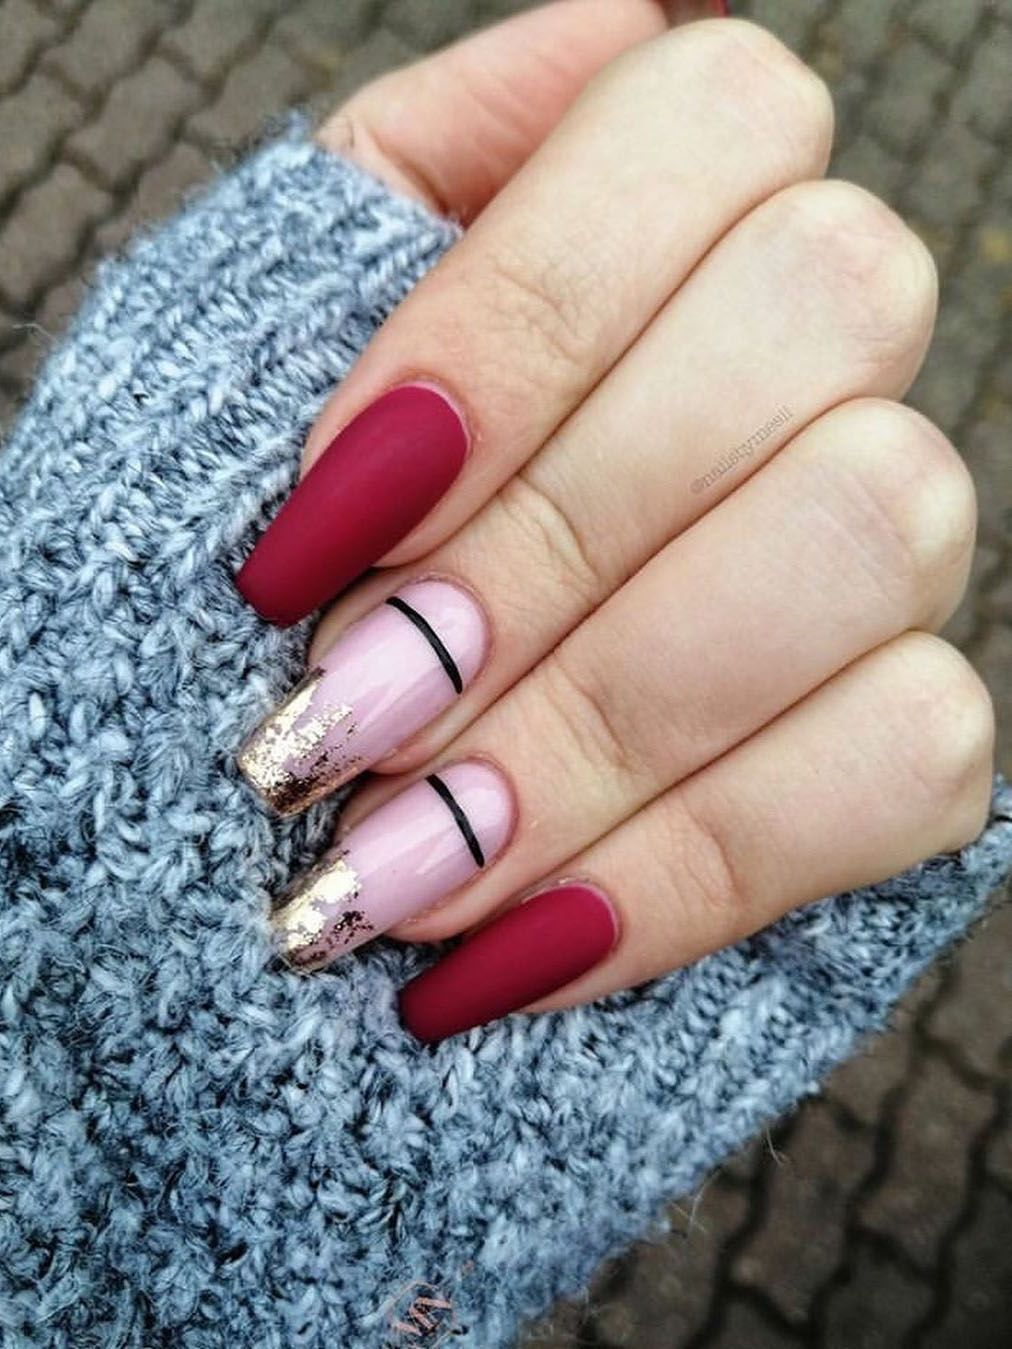 100 Easy New Year's Eve Nail Art Design Ideas Page 79 of